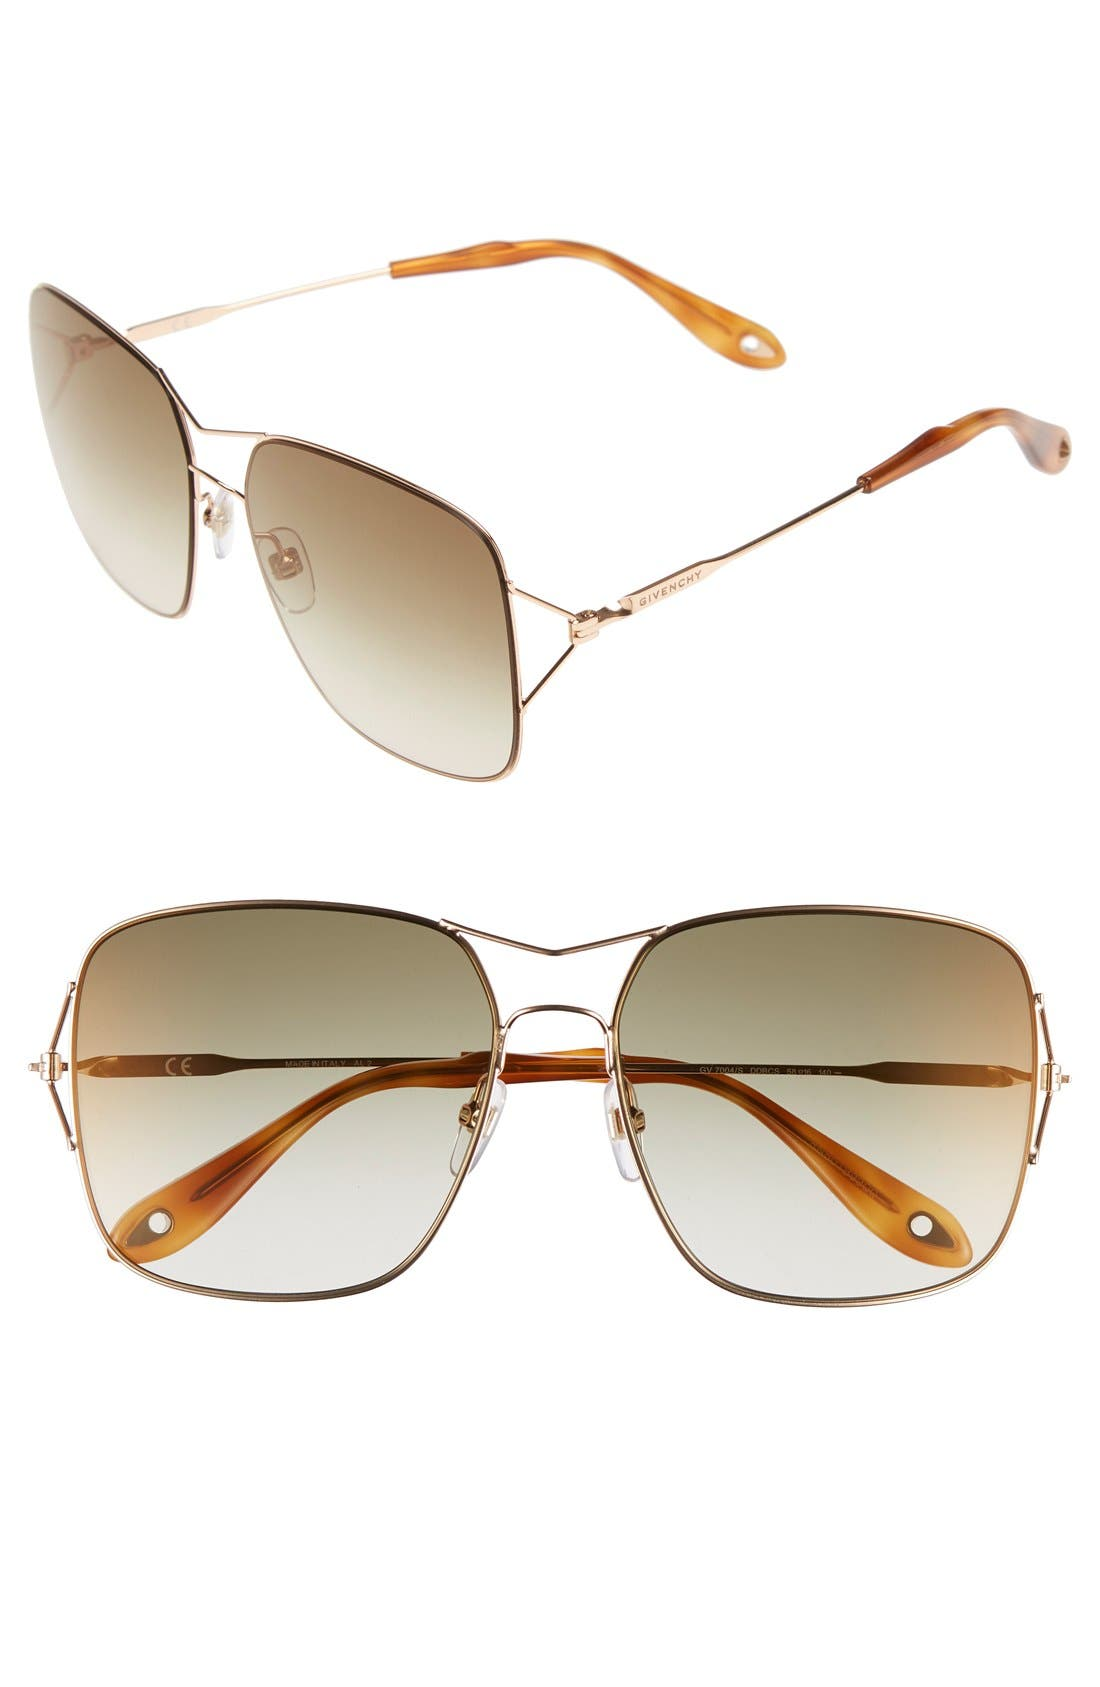 Main Image - Givenchy 58mm Sunglasses